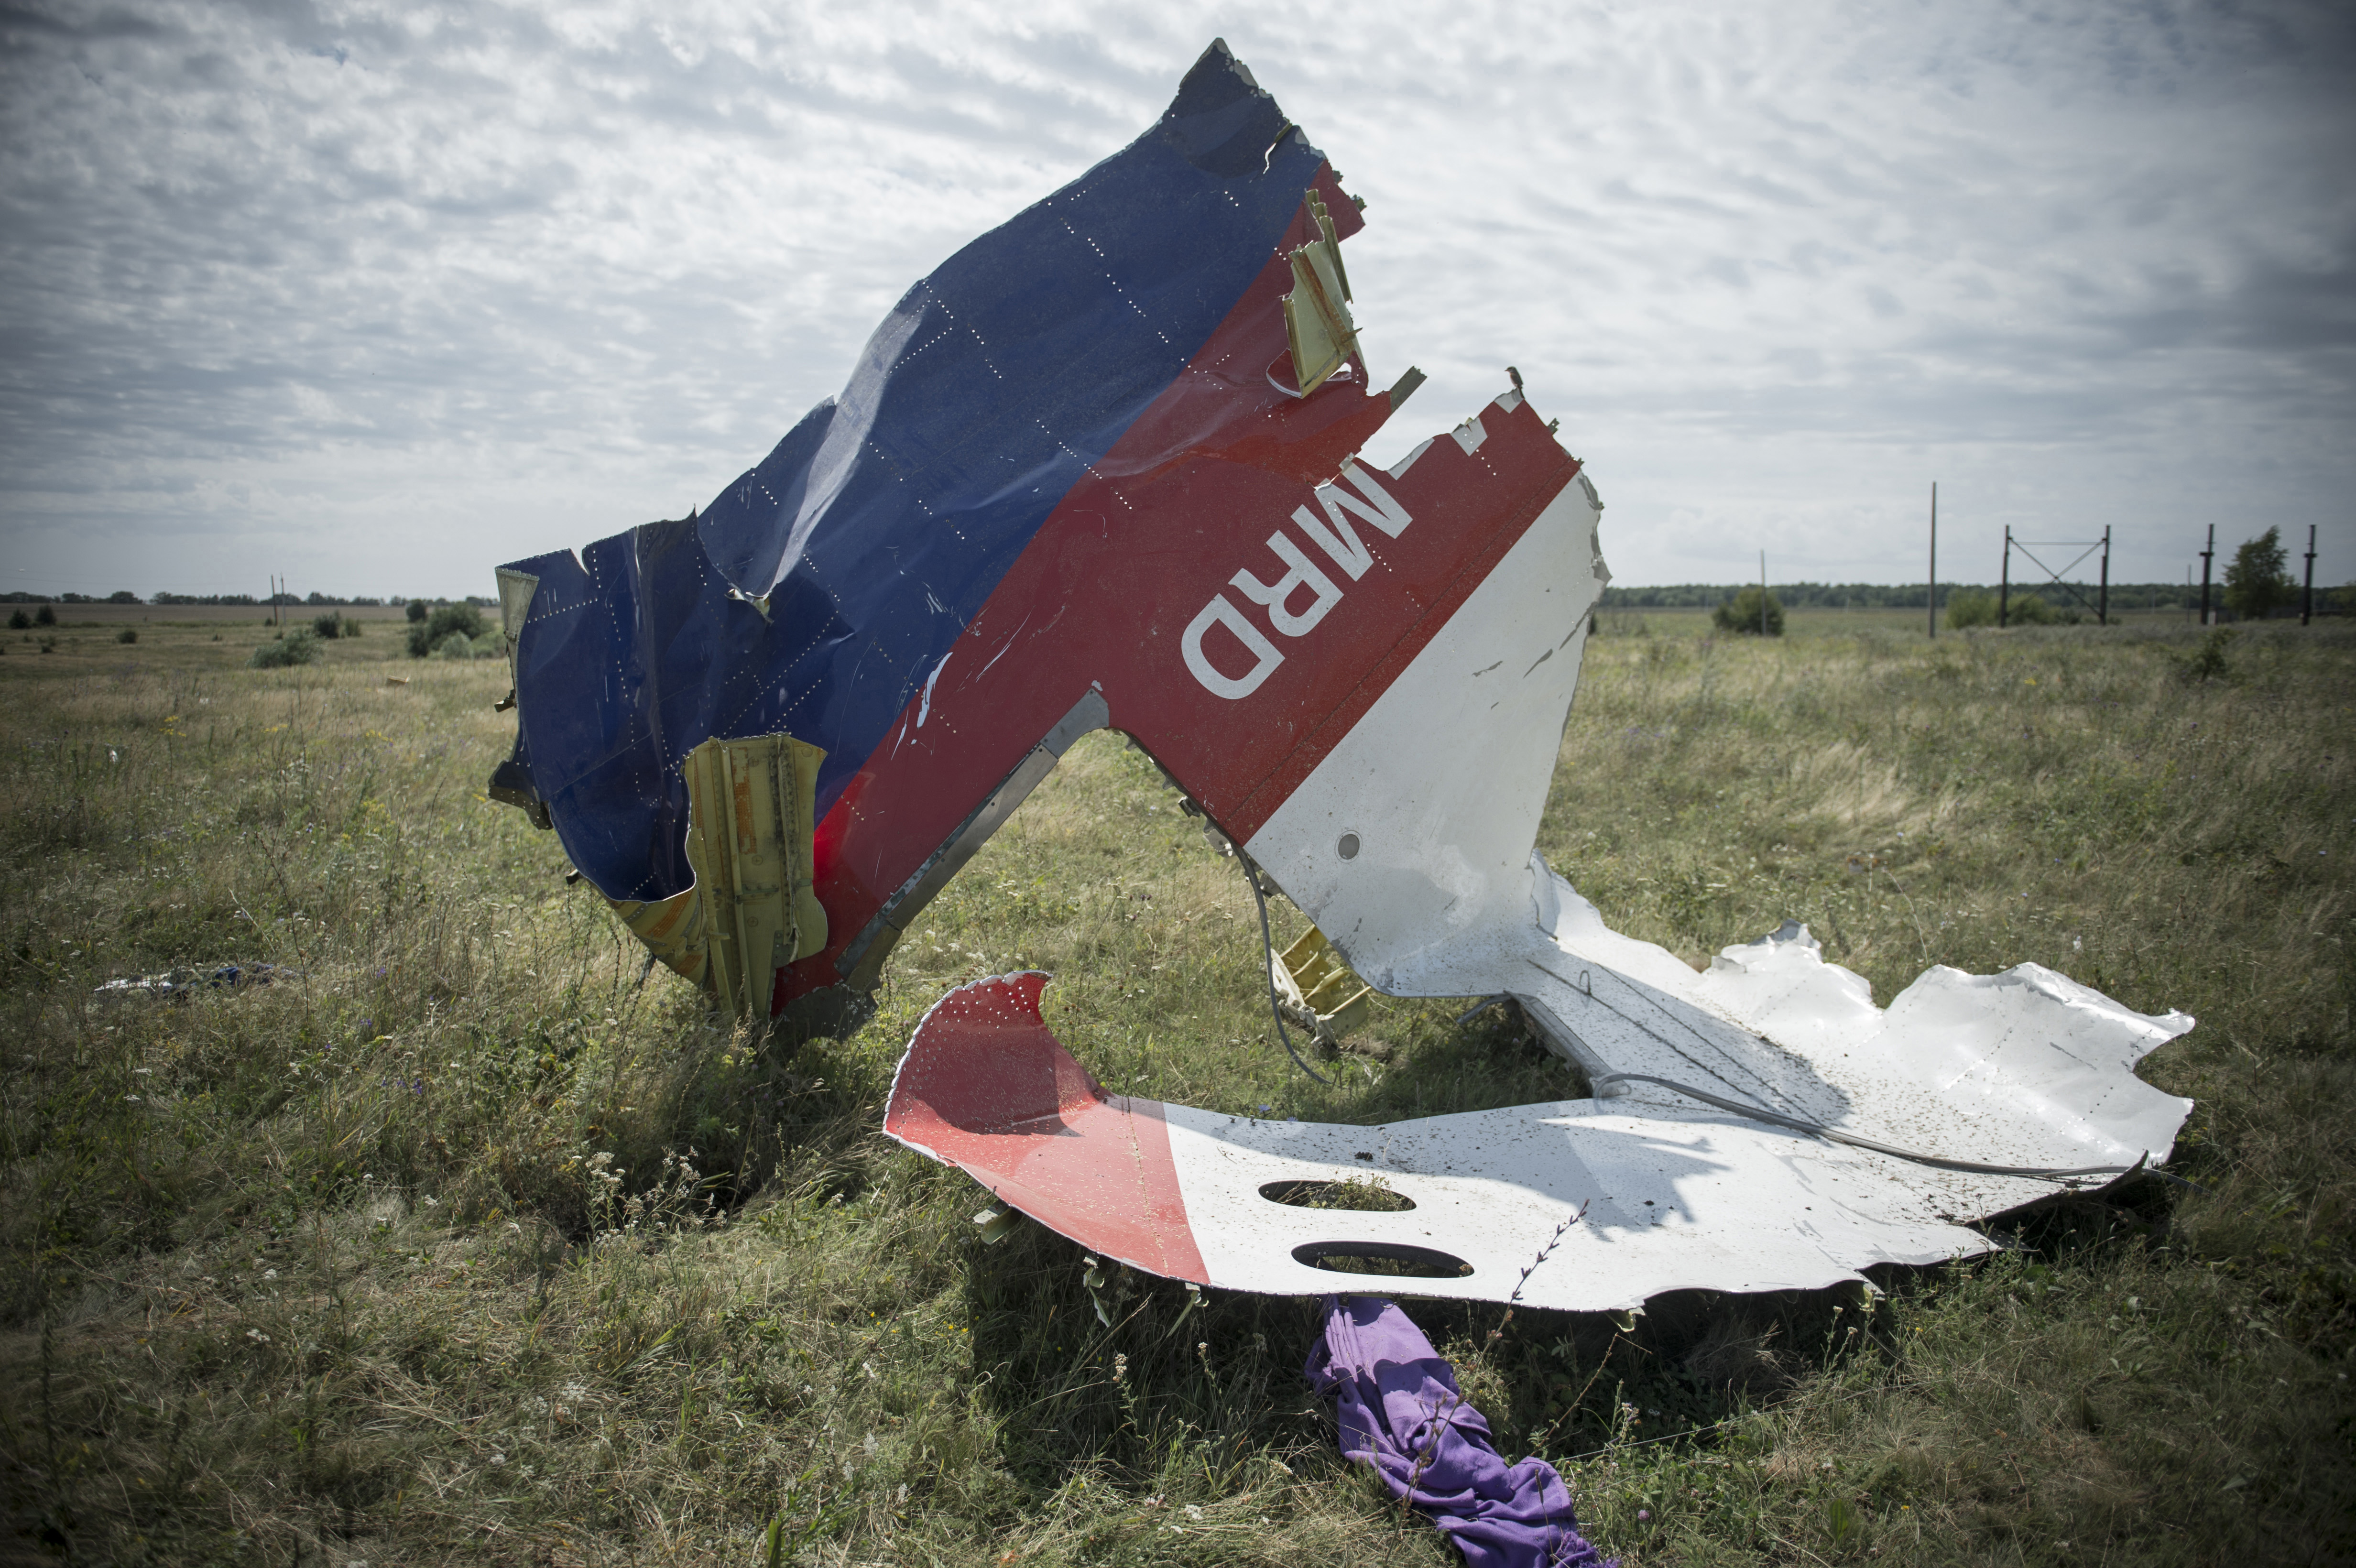 MH17 WING